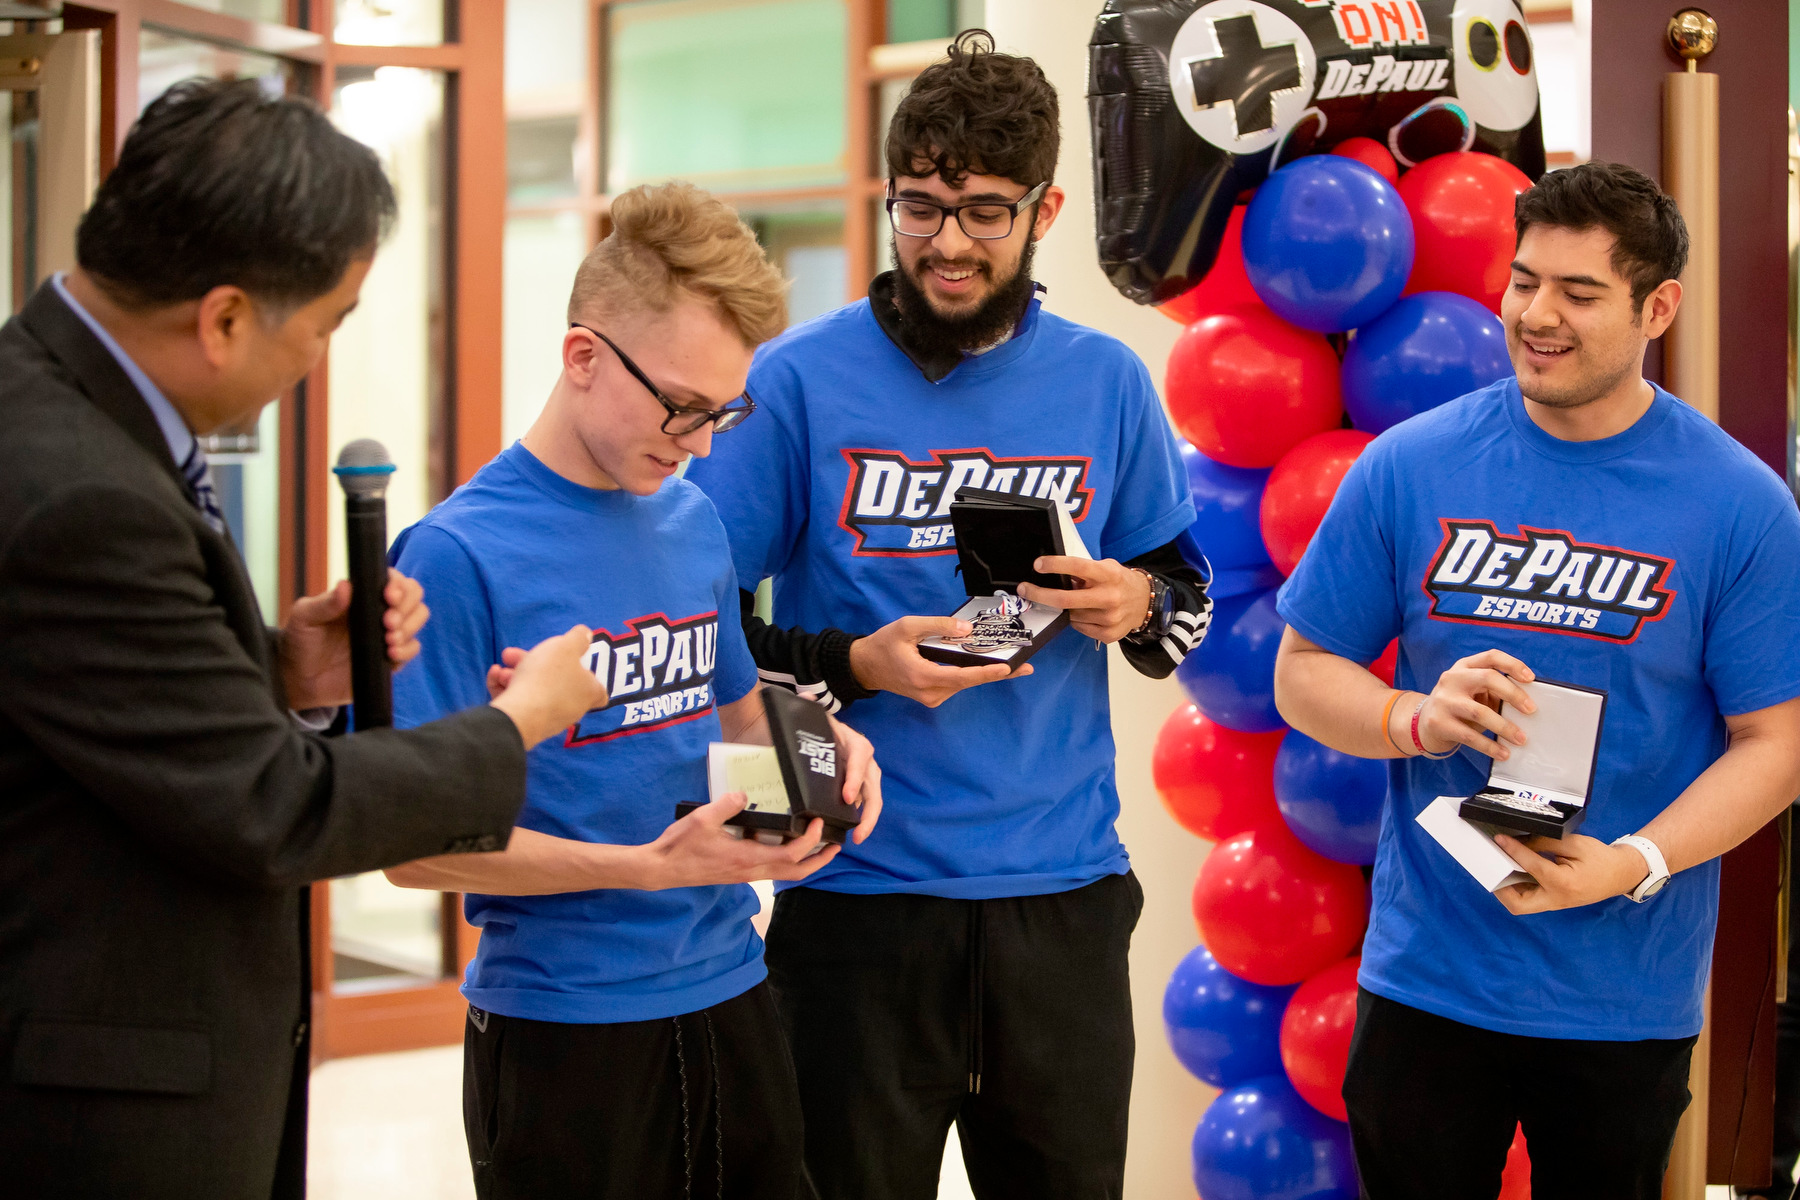 DePaul opens Esports Gaming Center